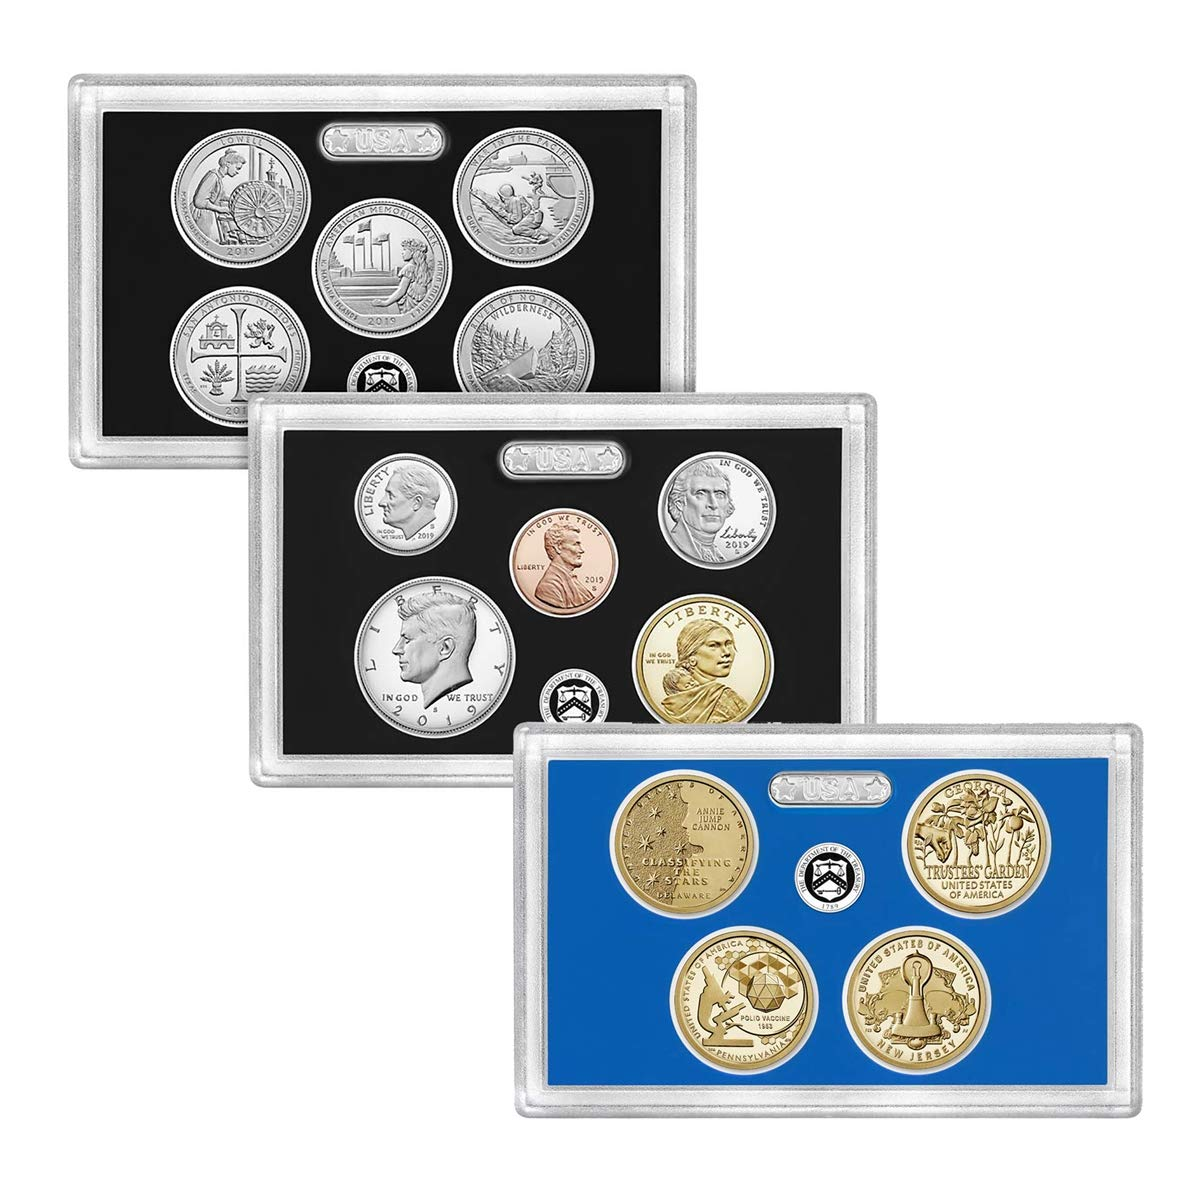 2019 S U.S. Mint 14 Coin Silver Proof Set with OGP boxes and COA Proof